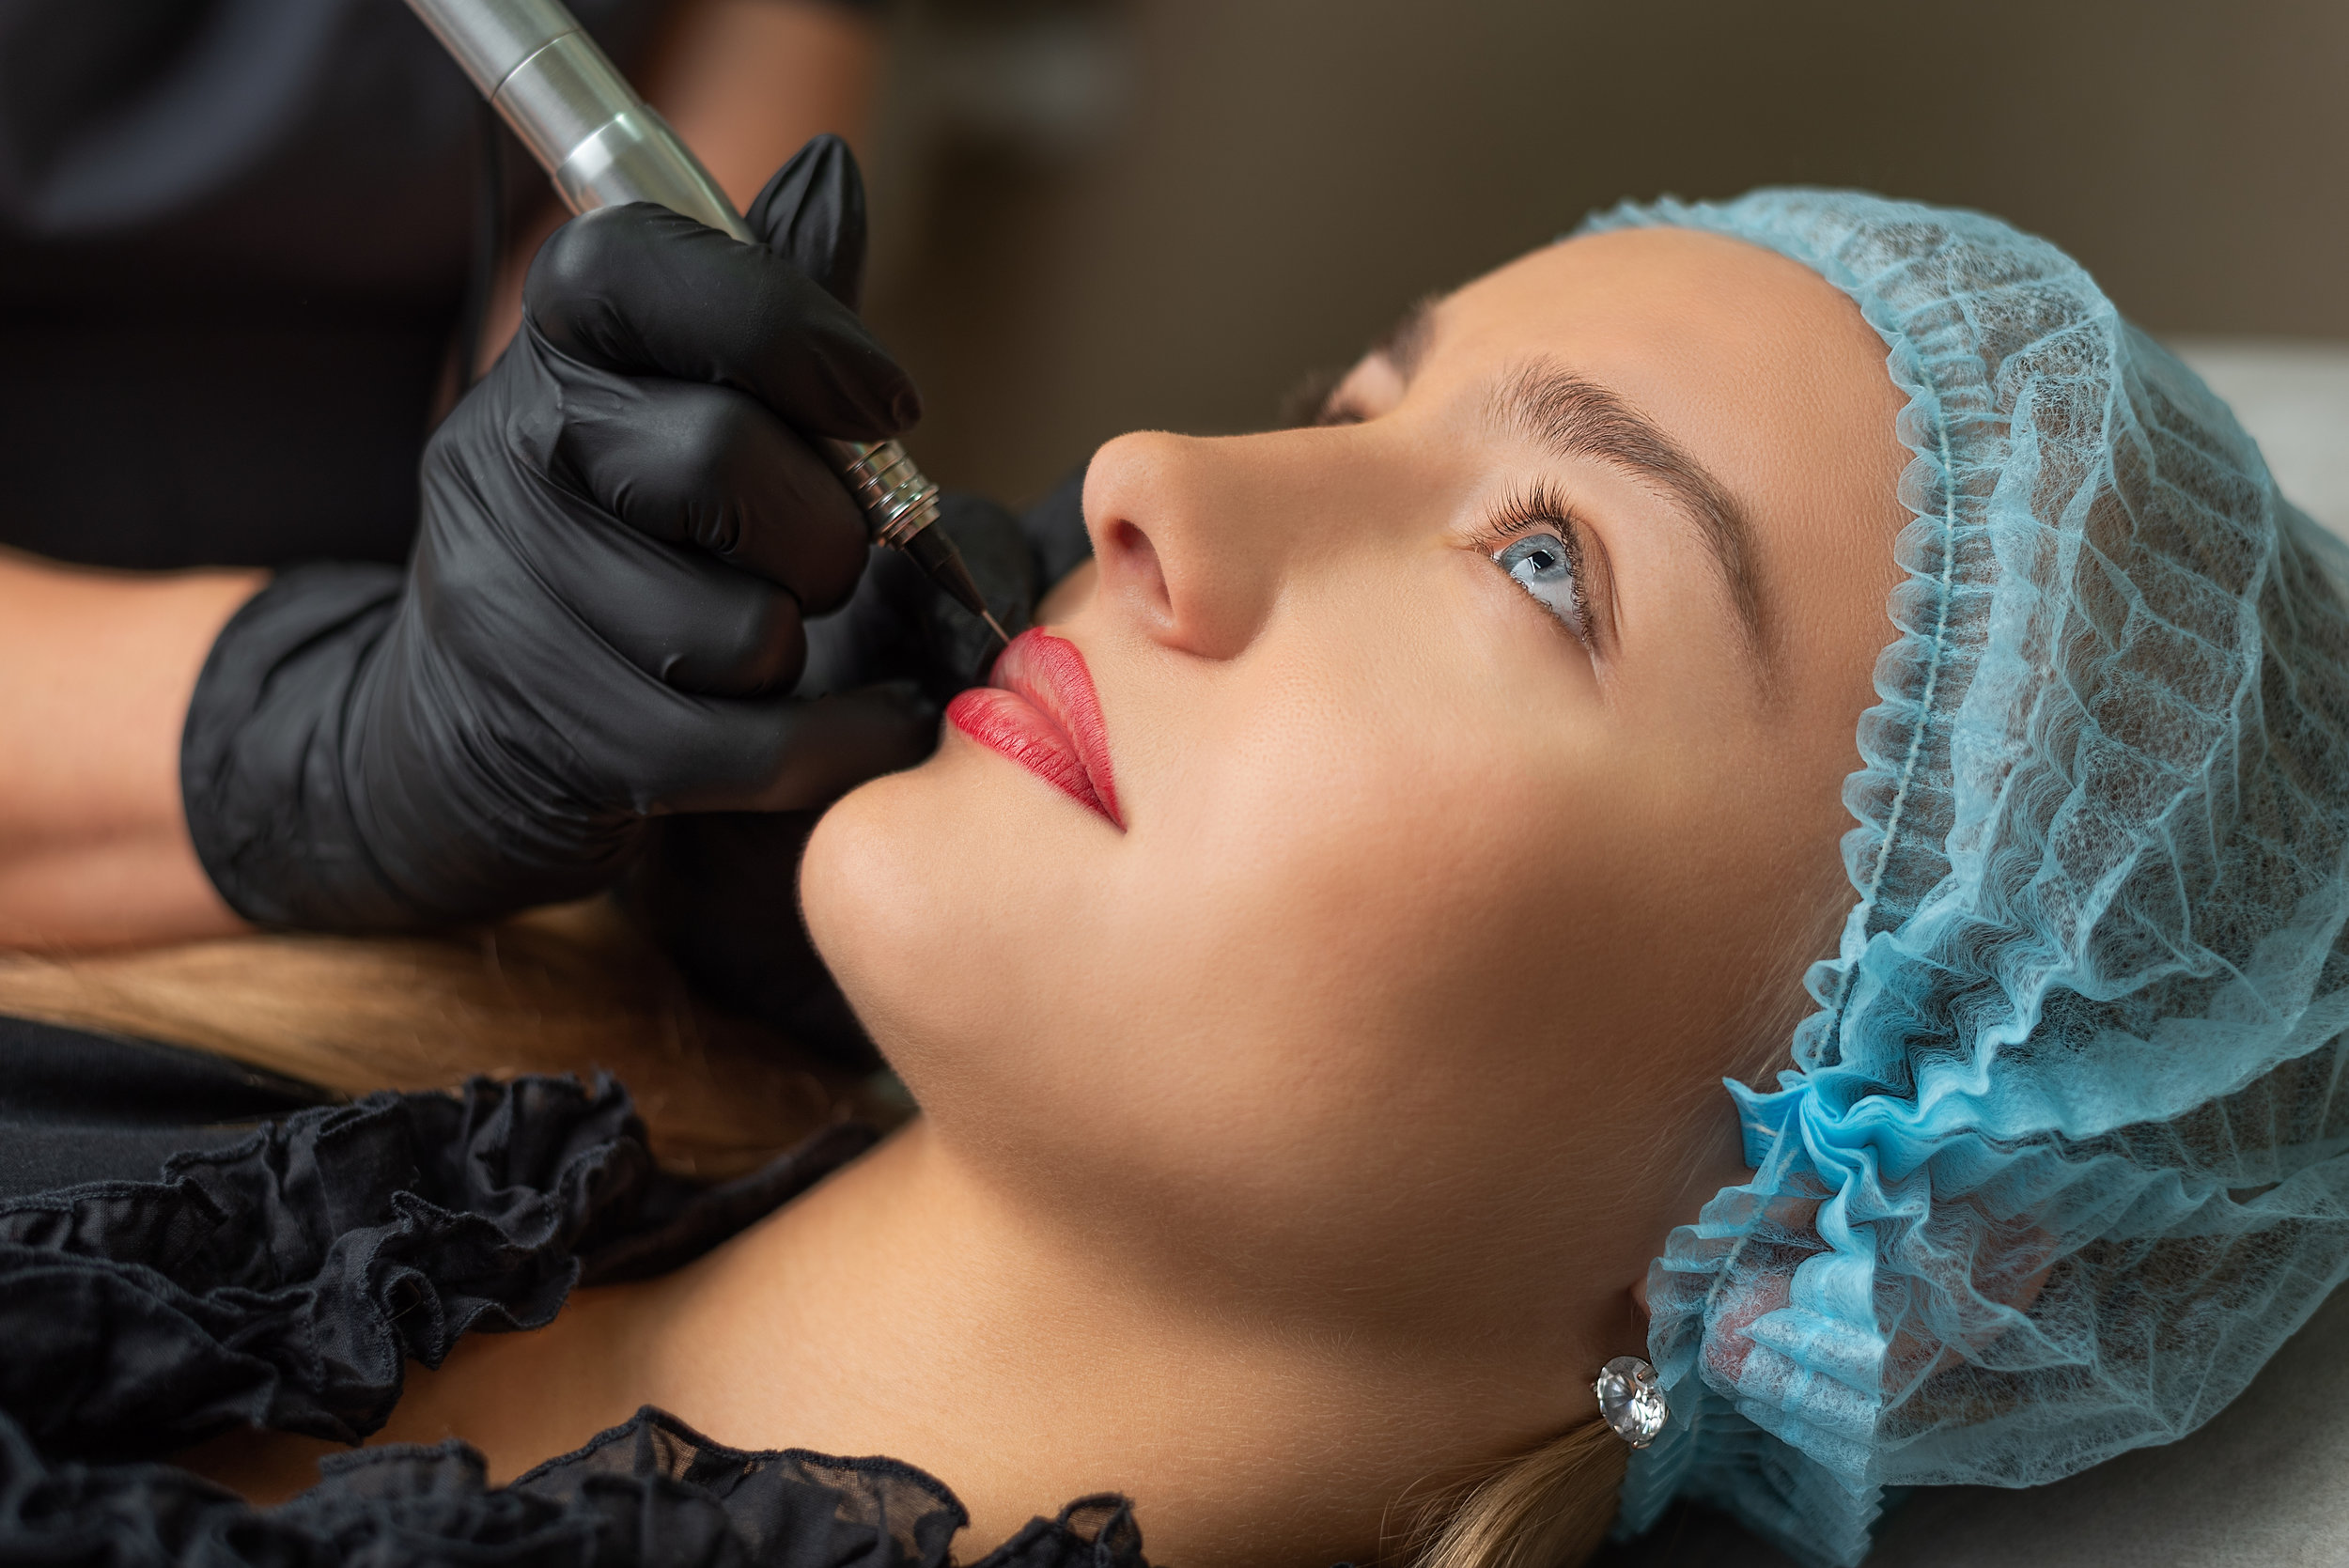 Lip Tint Tattoo   Results are expected to soften by 50% in the healing stage. ( includes 1 complimentary touch up 4-6 weeks post procedure)   * Full Lip Blend  $1,300.00   *Lip Line Only  $995.00